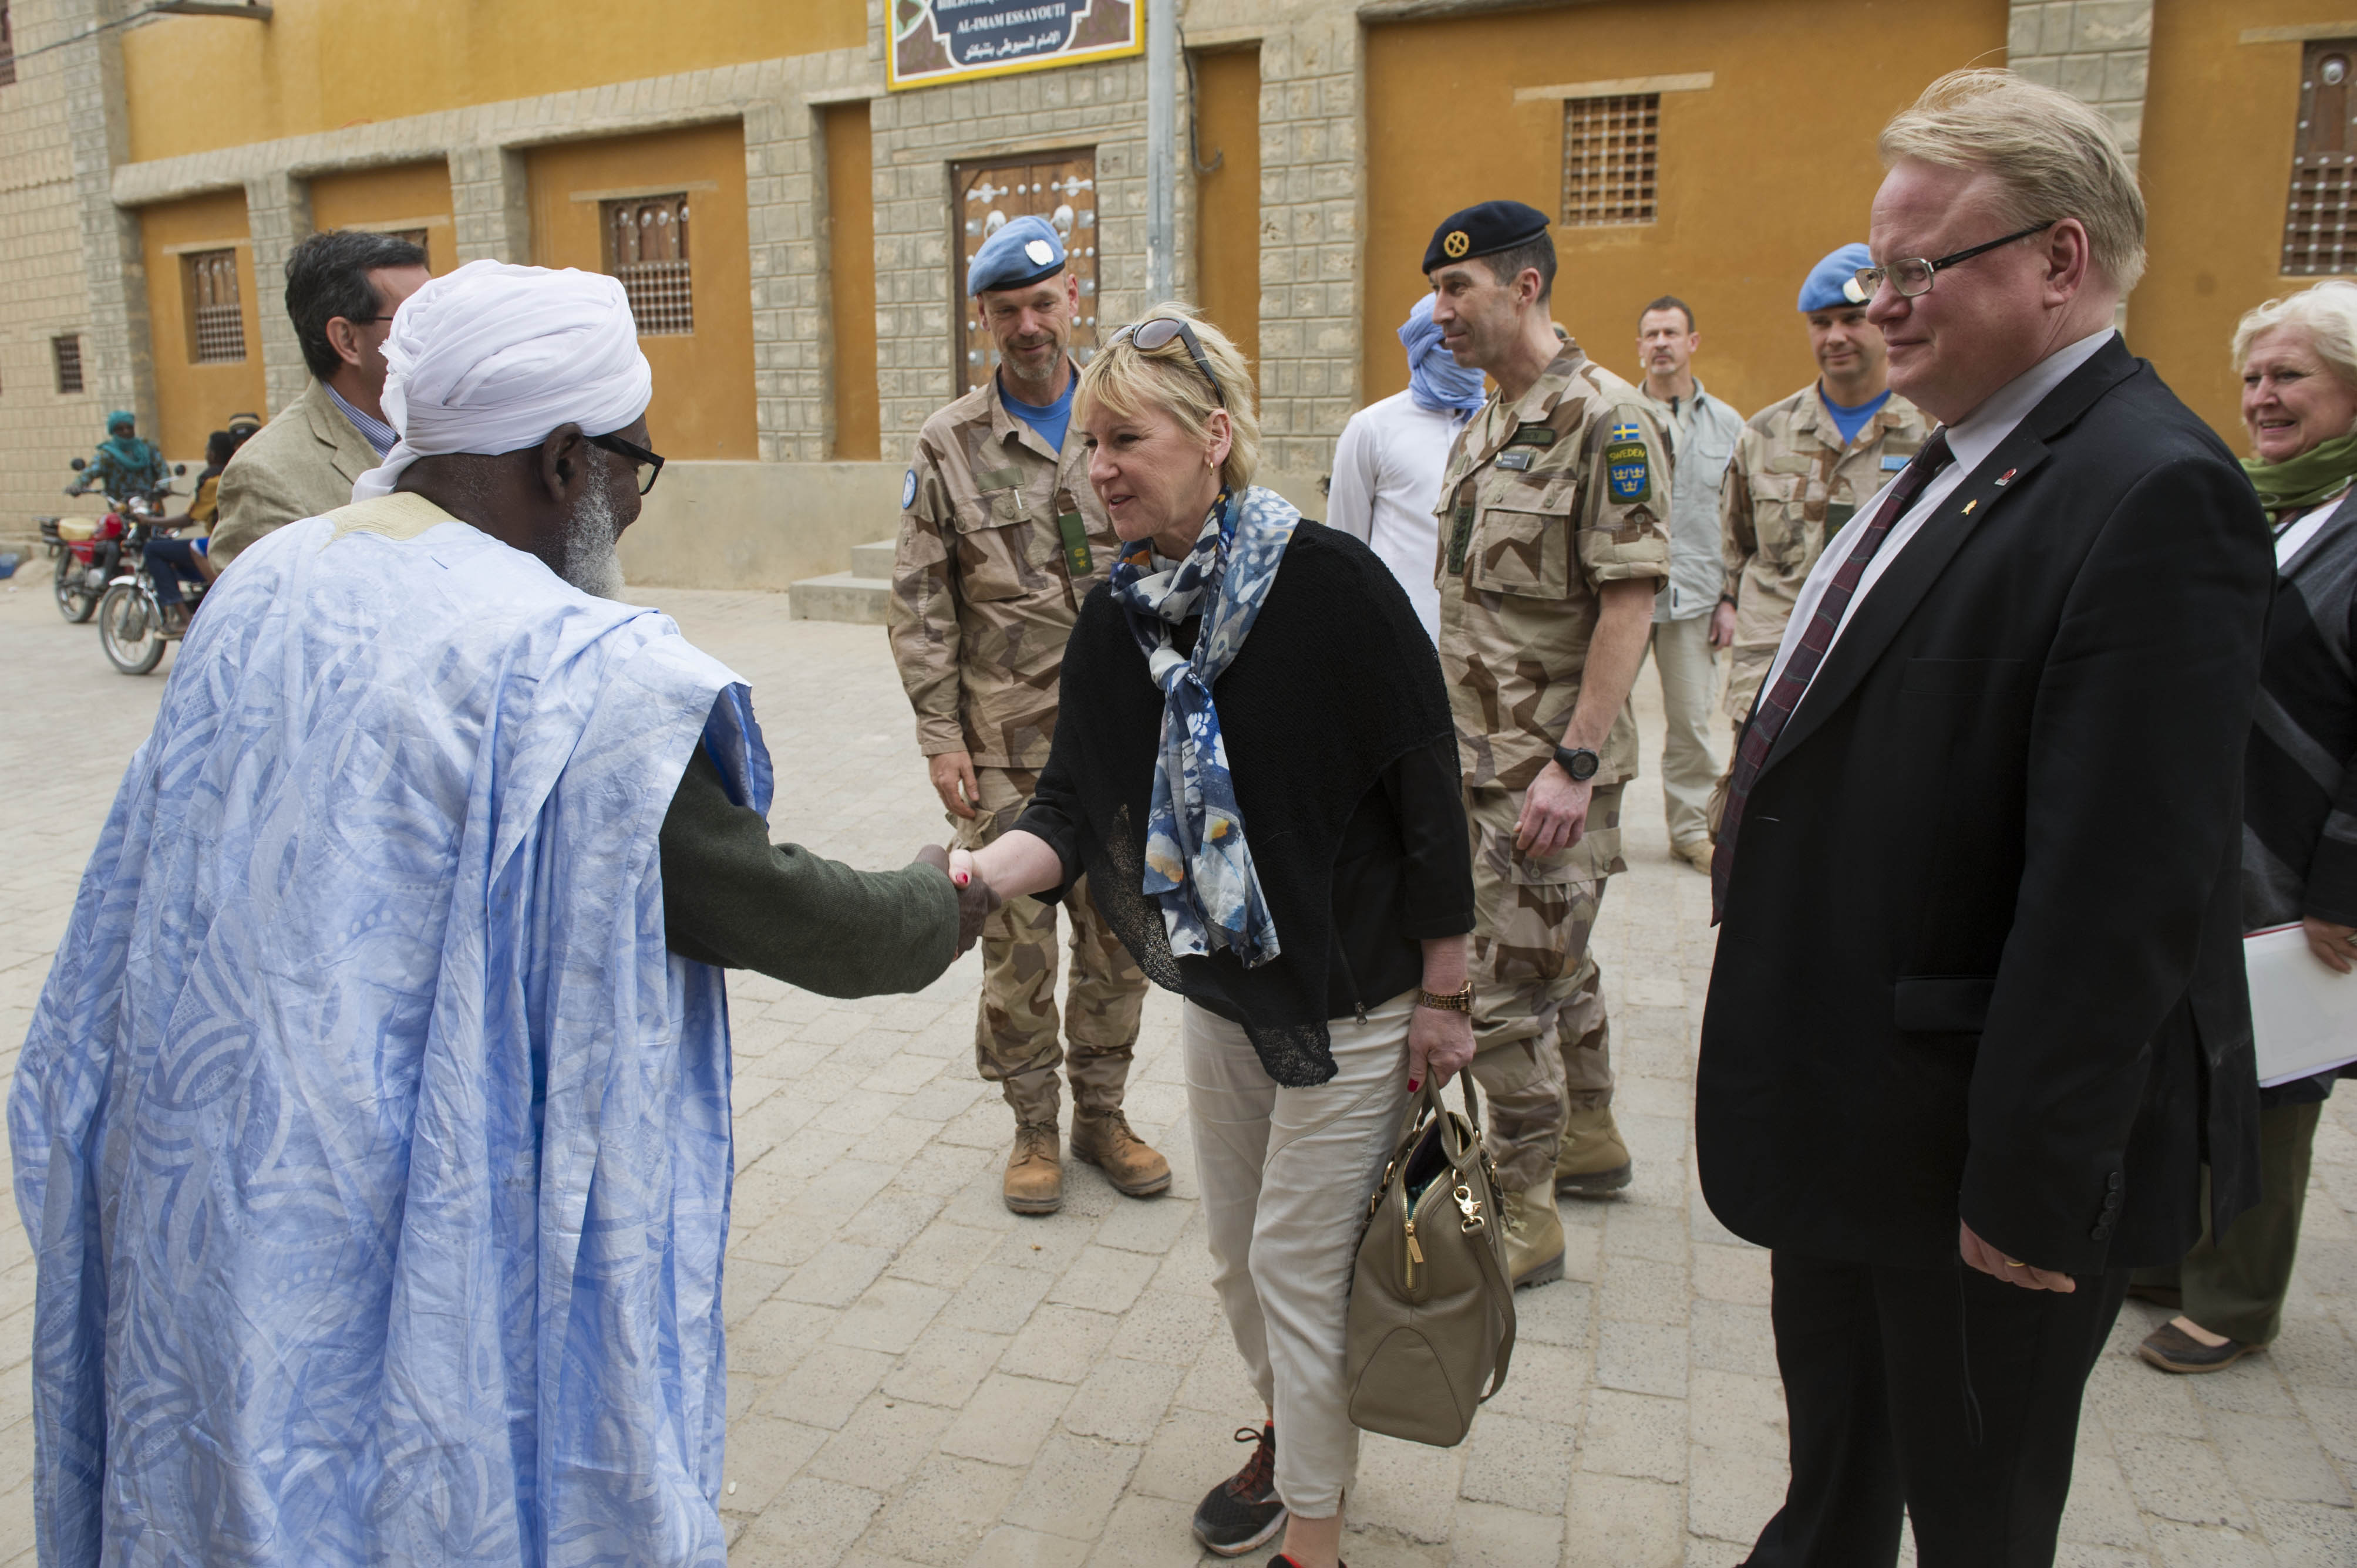 Minister for Foreign Affairs Margot Wallström and Misiter for Defence Peter Hultqvist visiting the UN Mission in Mali 2016